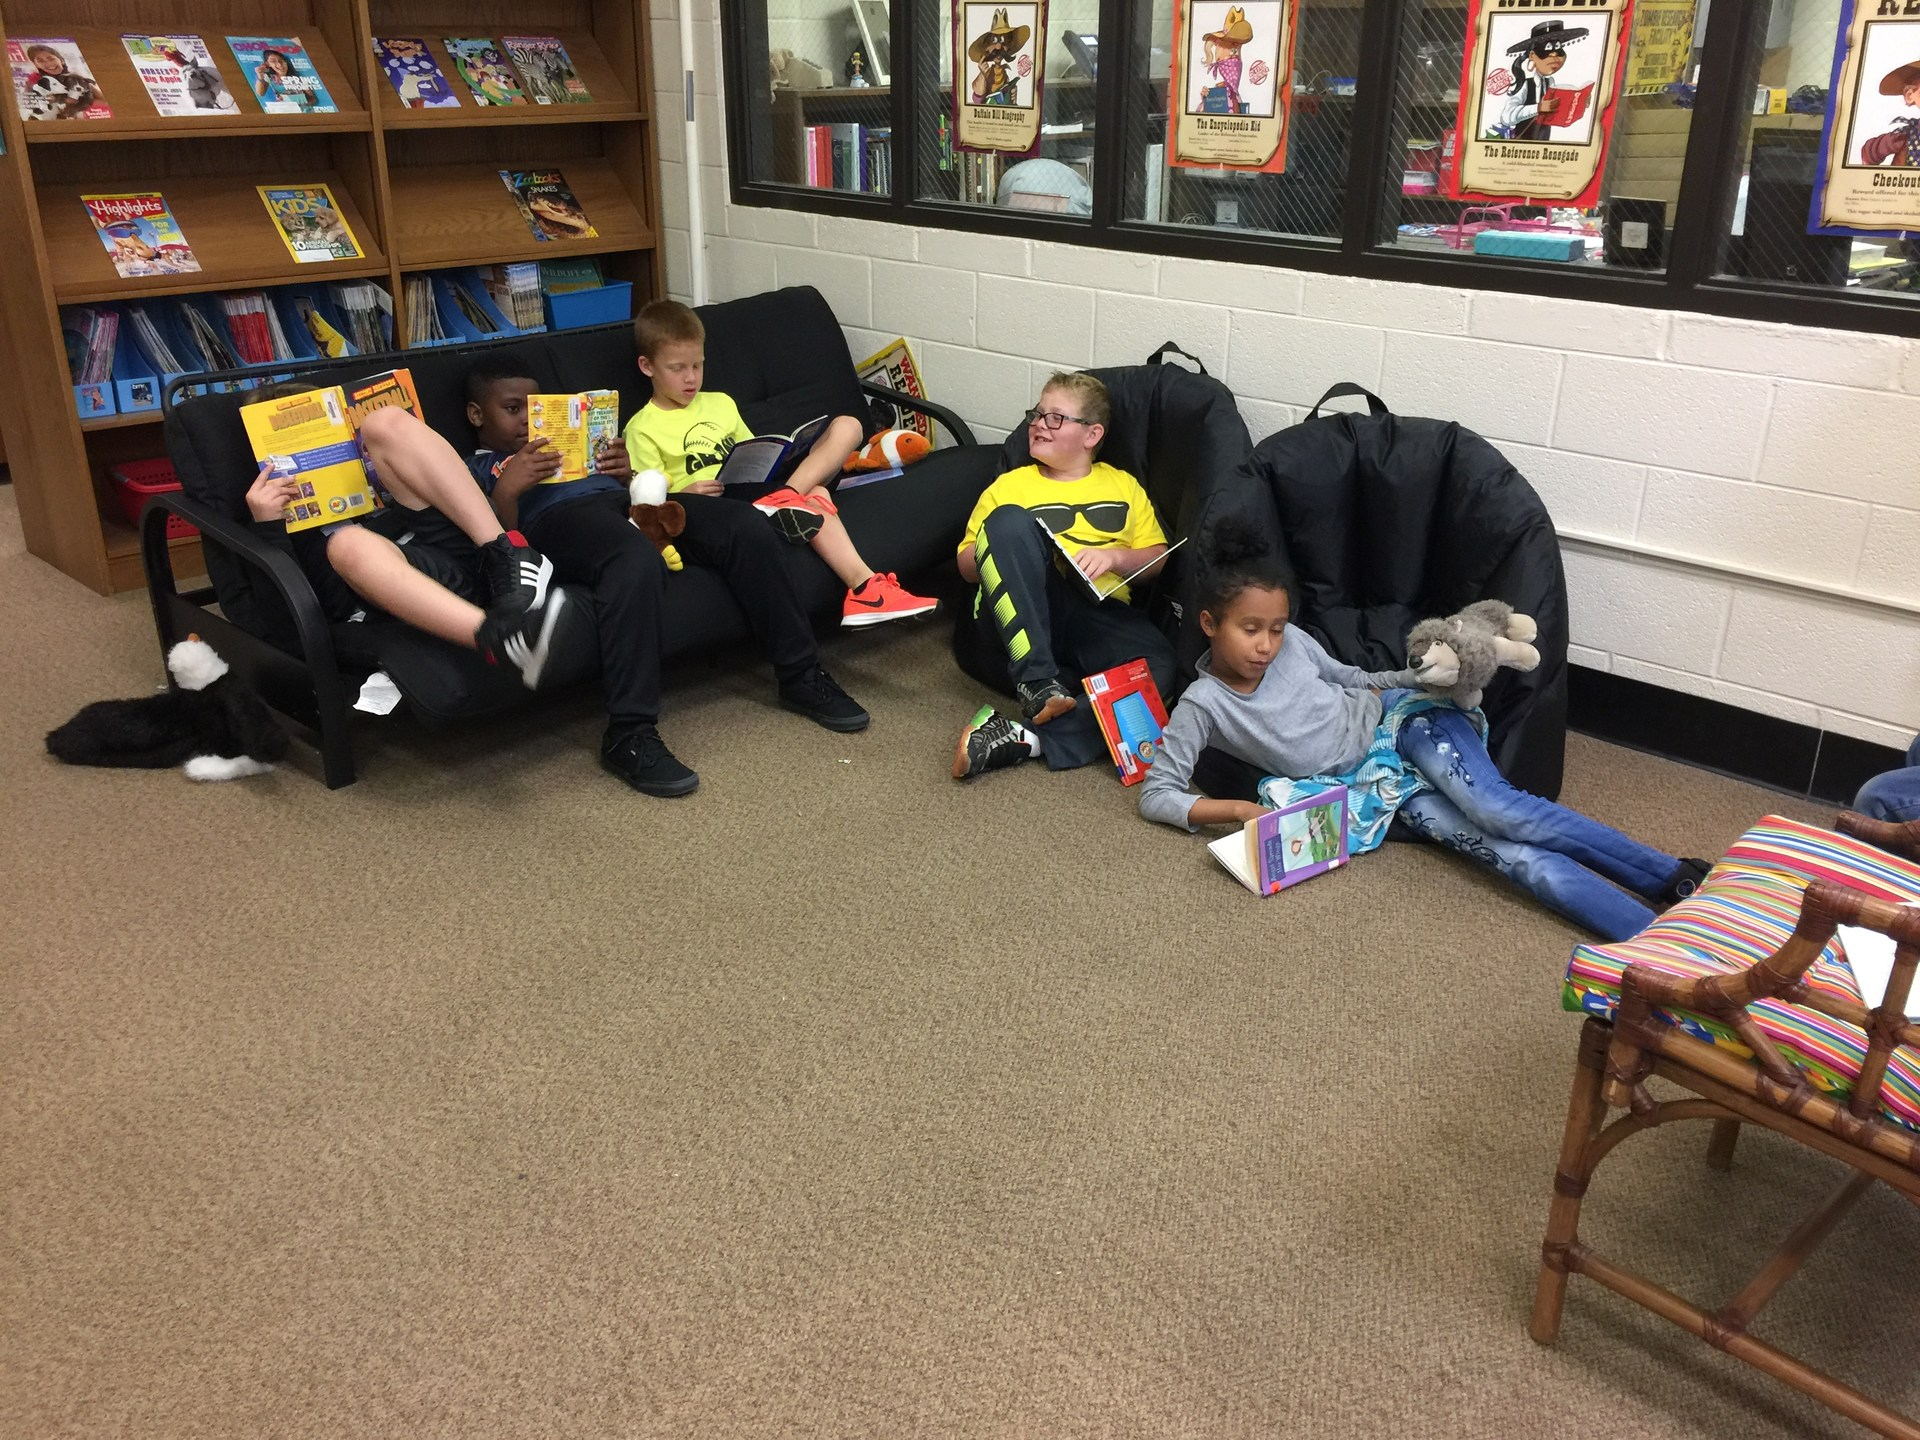 Students relaxing and reading for fun in the library at Midway Elementary.